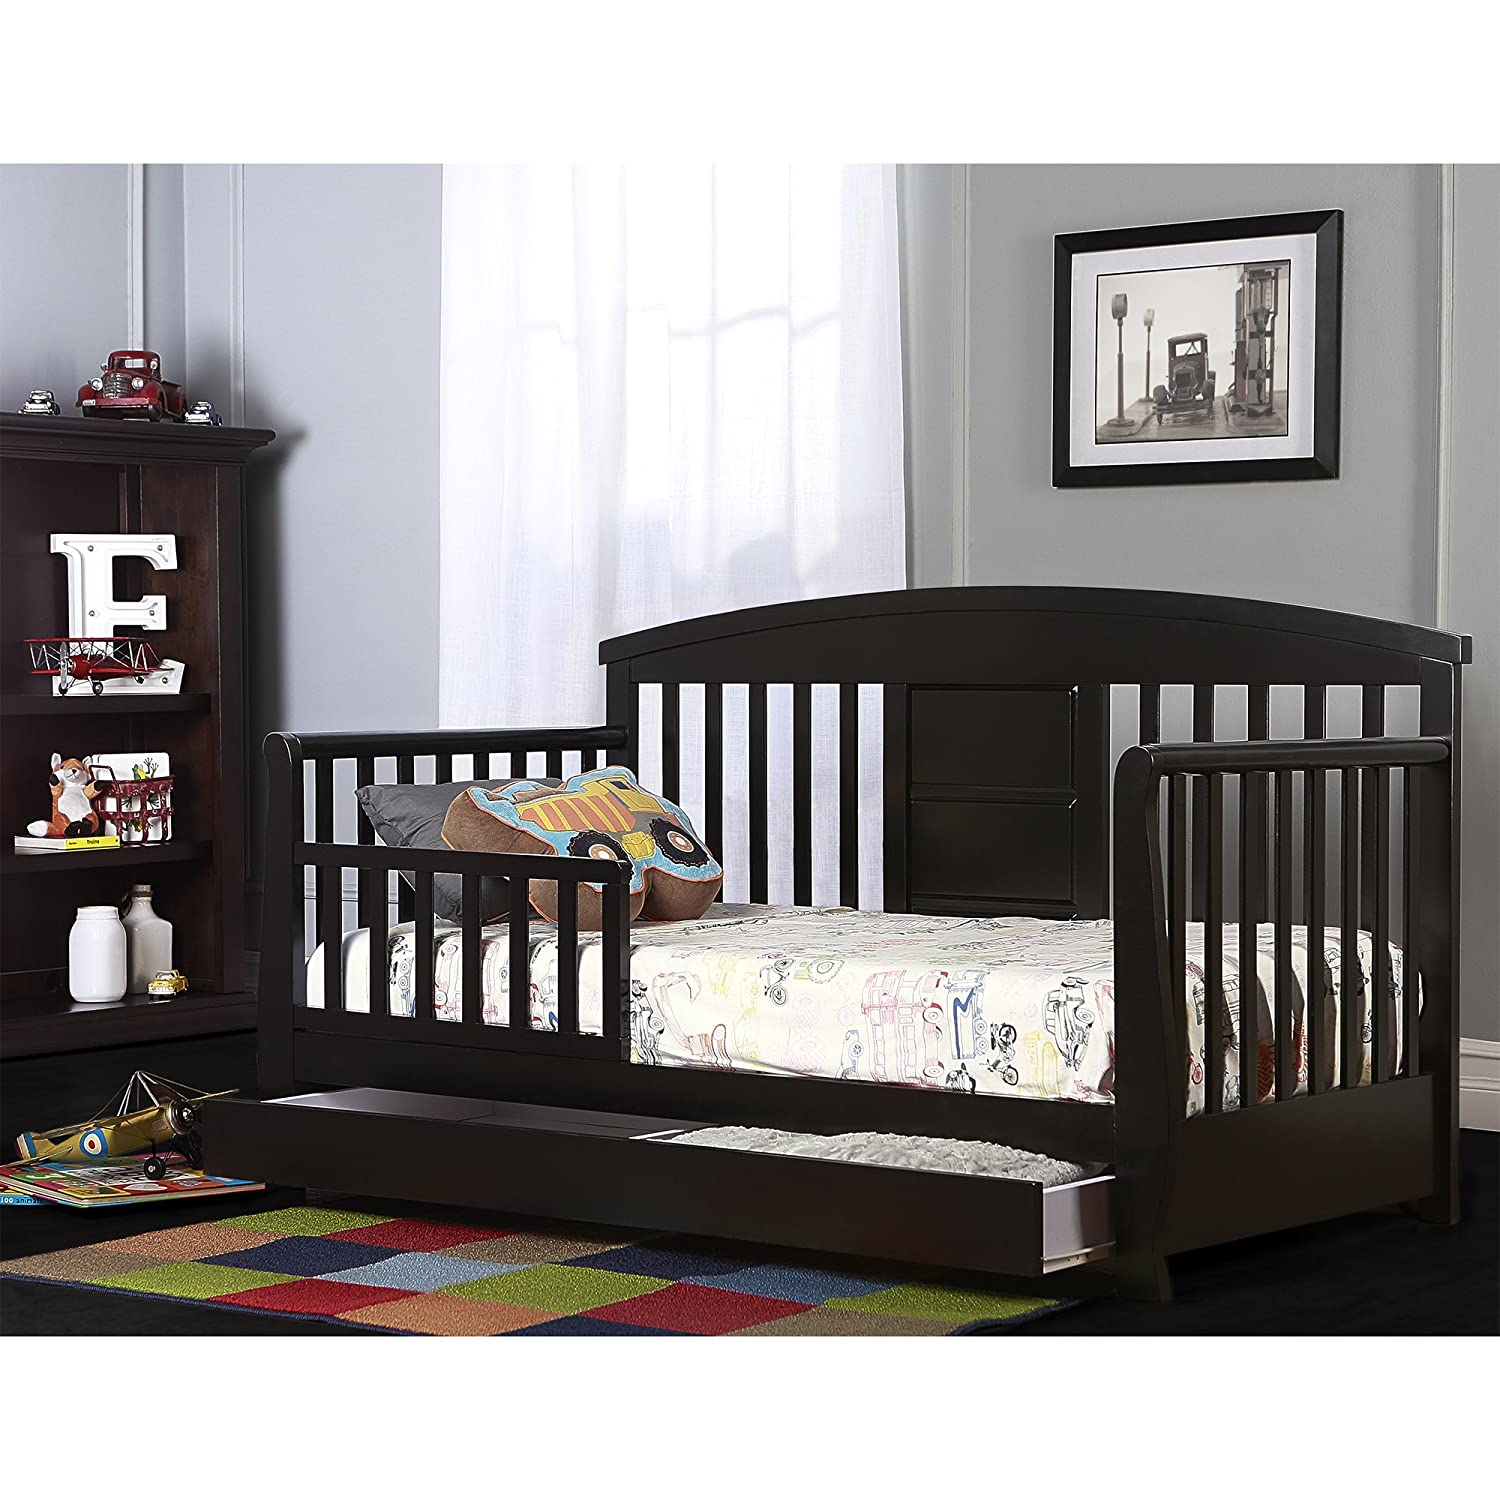 Dream On Me Deluxe Toddler Day Bed Natural